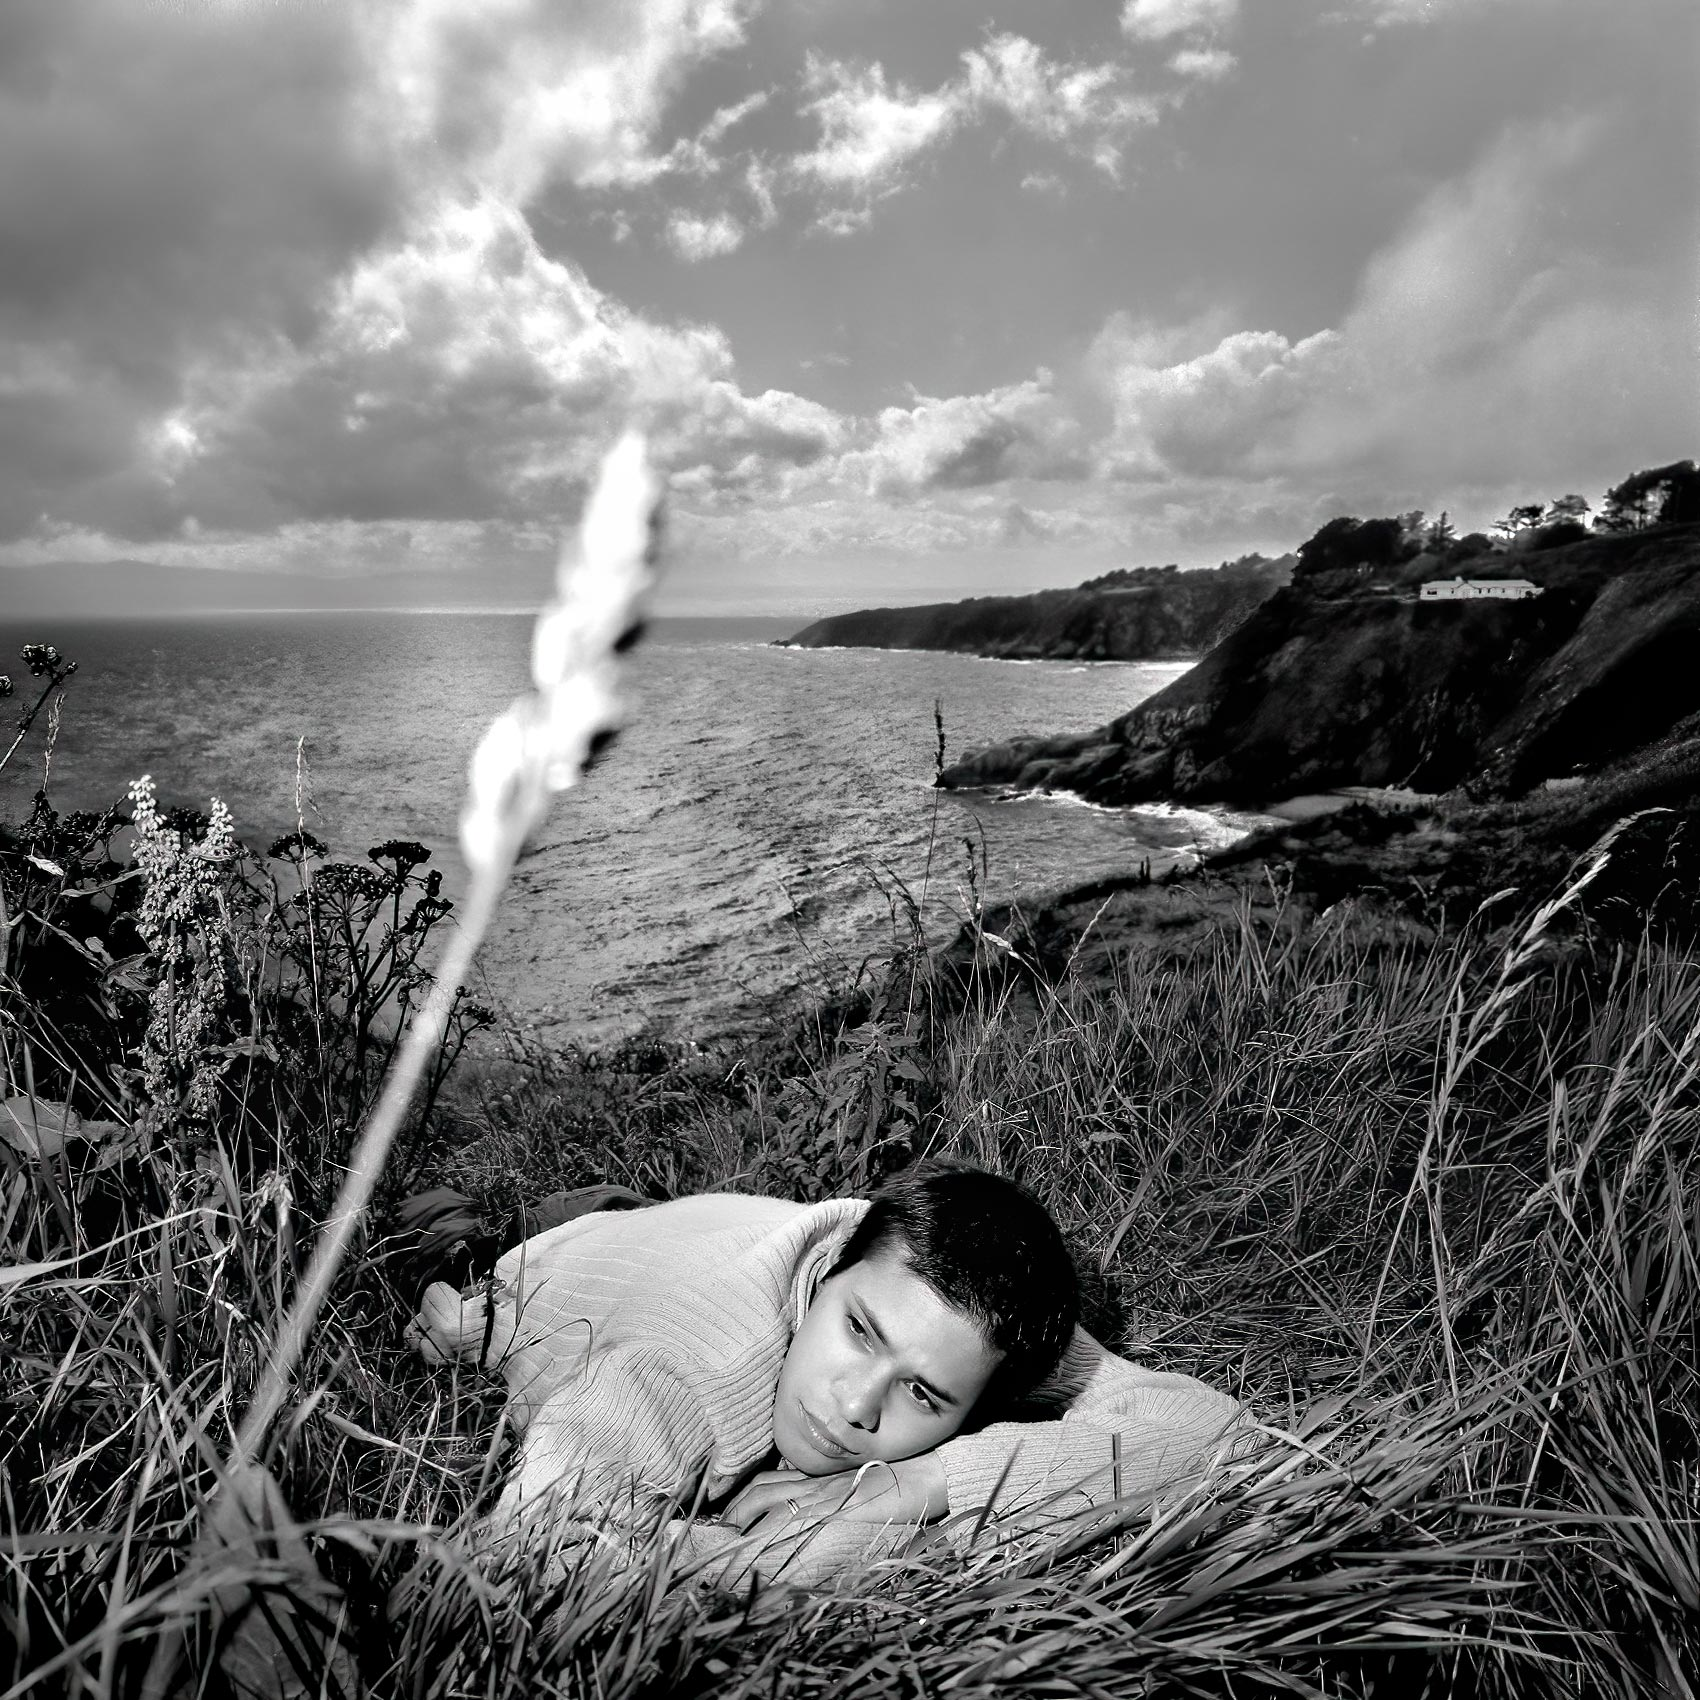 ebehard-schonleays-from-berlin-lays-on-a-hillside-near-the-light-house-in-howth-ireland-with-the-bay-of-dublin-behind-him